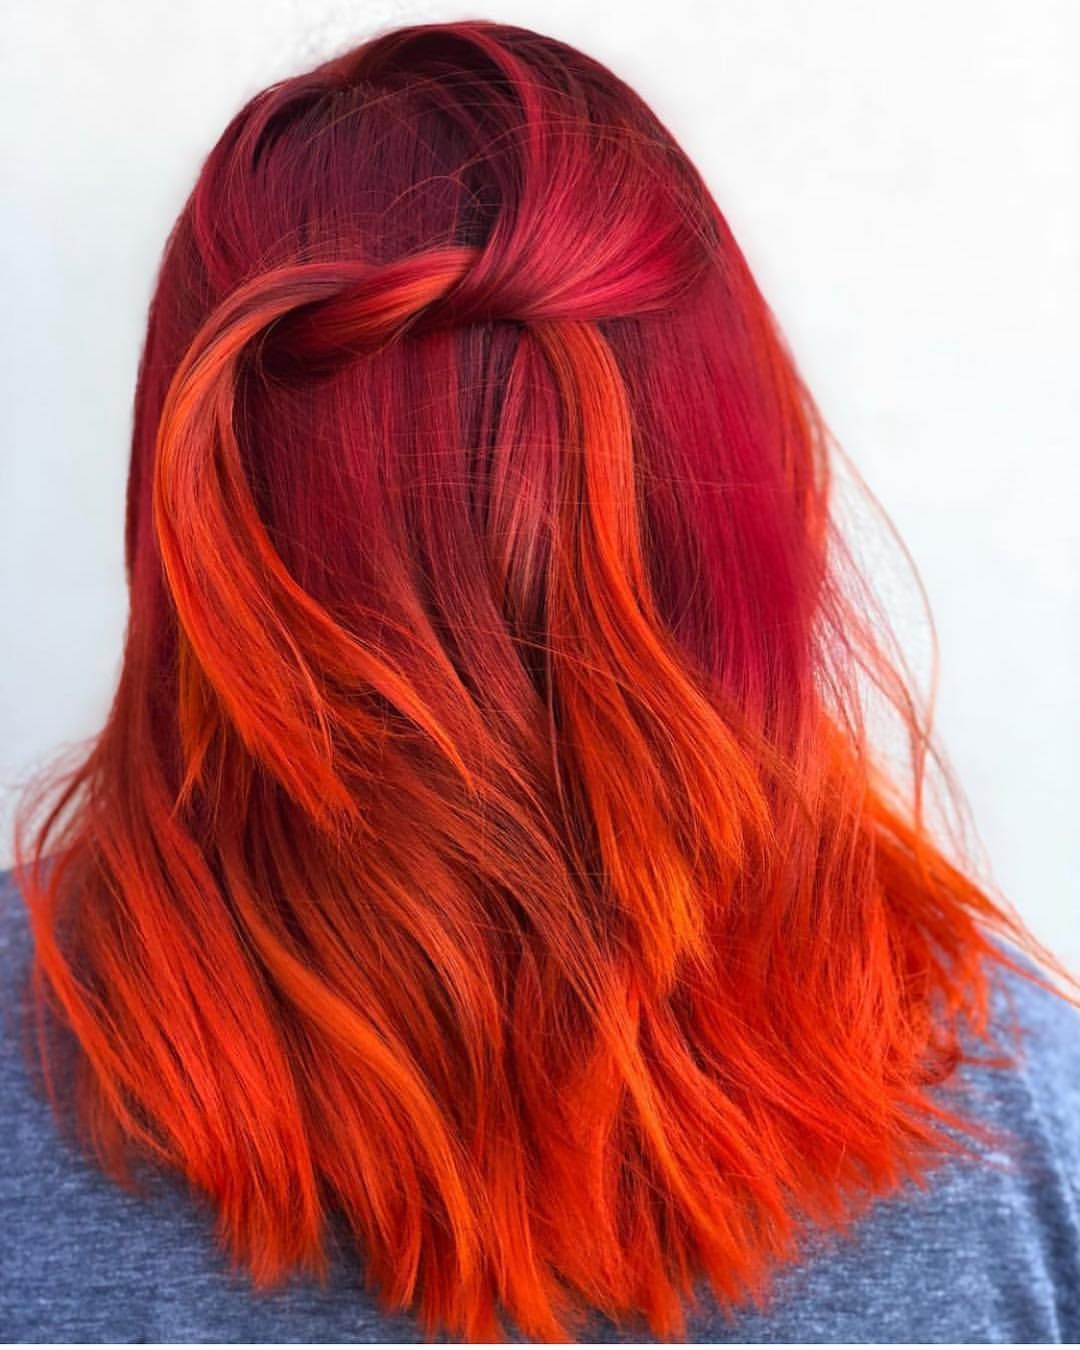 Pulp riot hair color on instagram uctriedandtruesalon is the artist